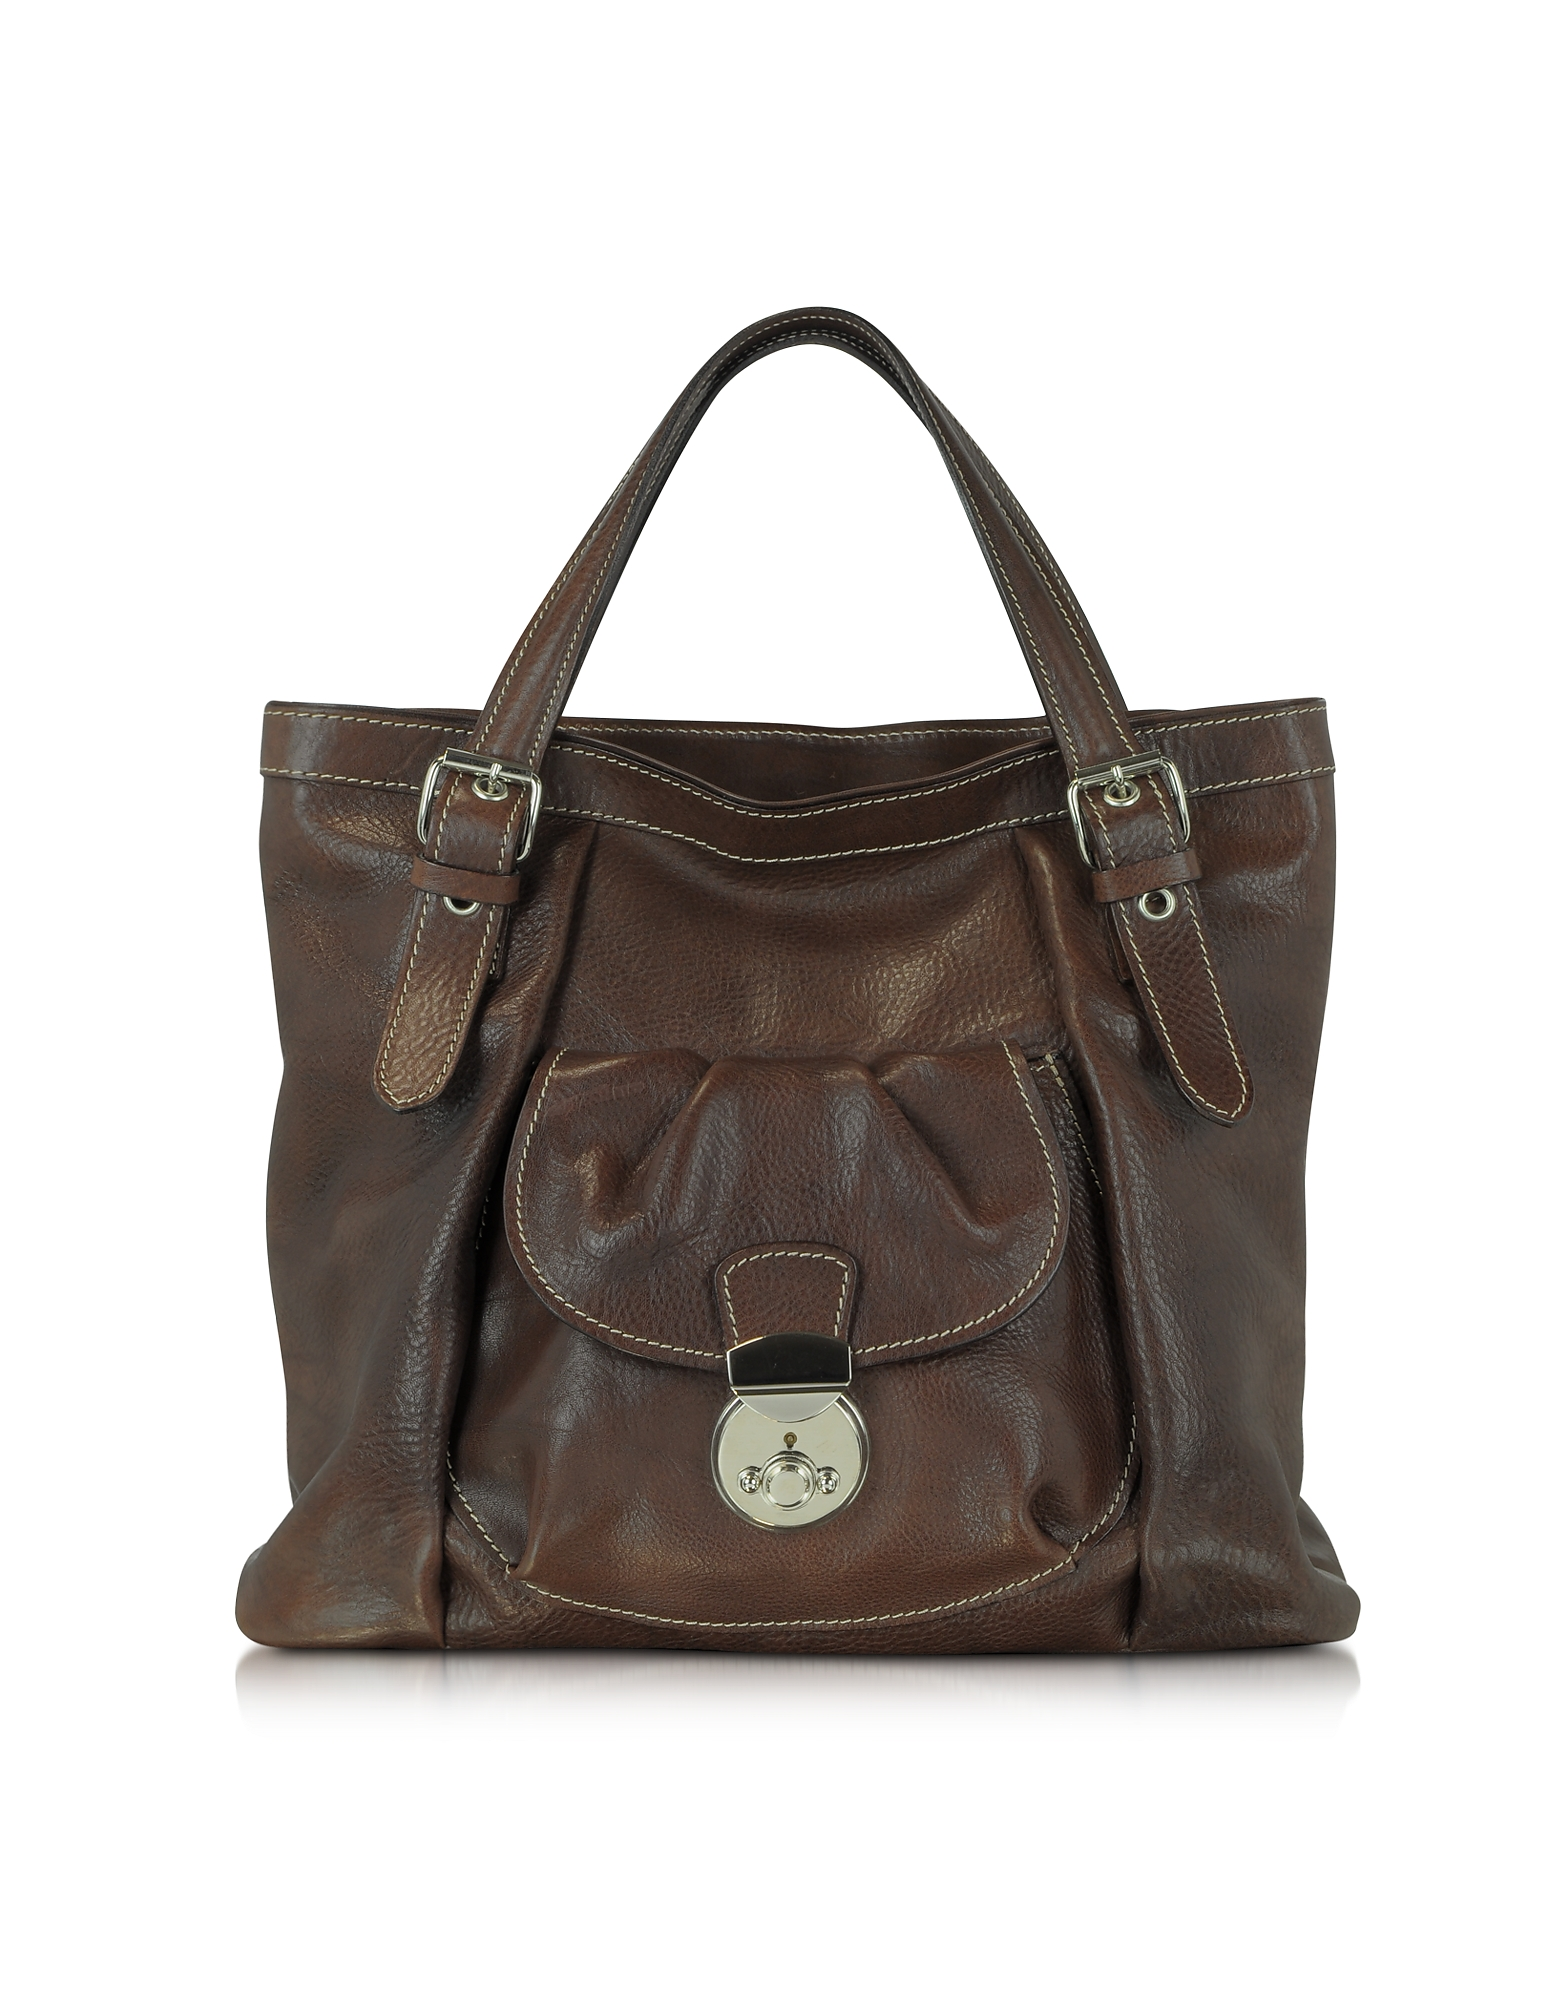 Robe di Firenze Handbags, Dark Brown Italian Leather Tote